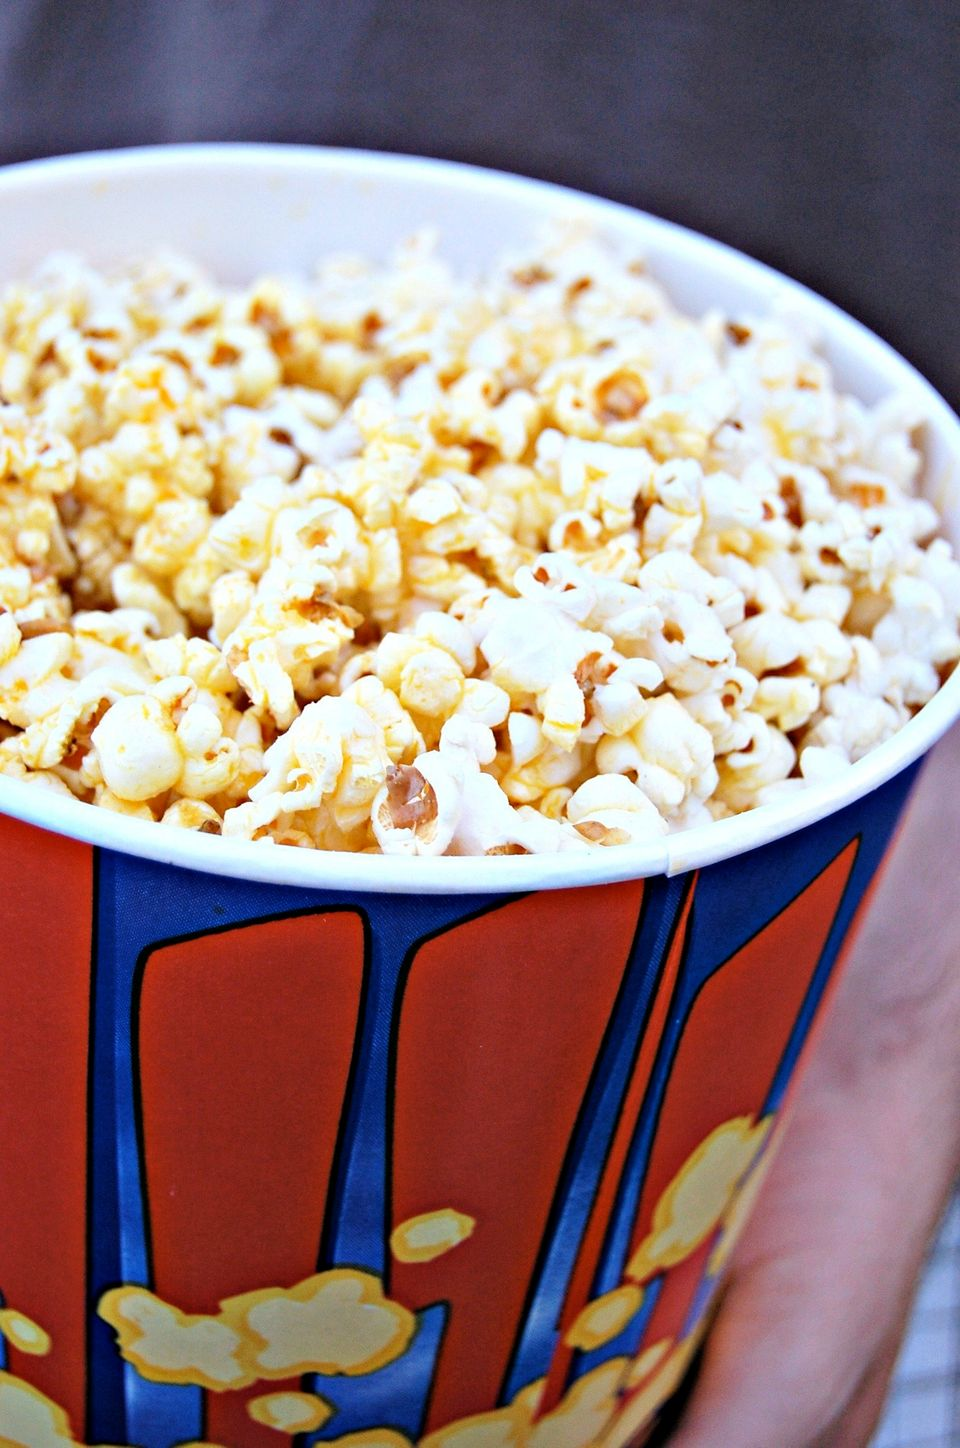 What's harder to digest: (1) Movie theater popcorn has an average markup of 1,275 percent, or (2) With a soda, that popcorn h